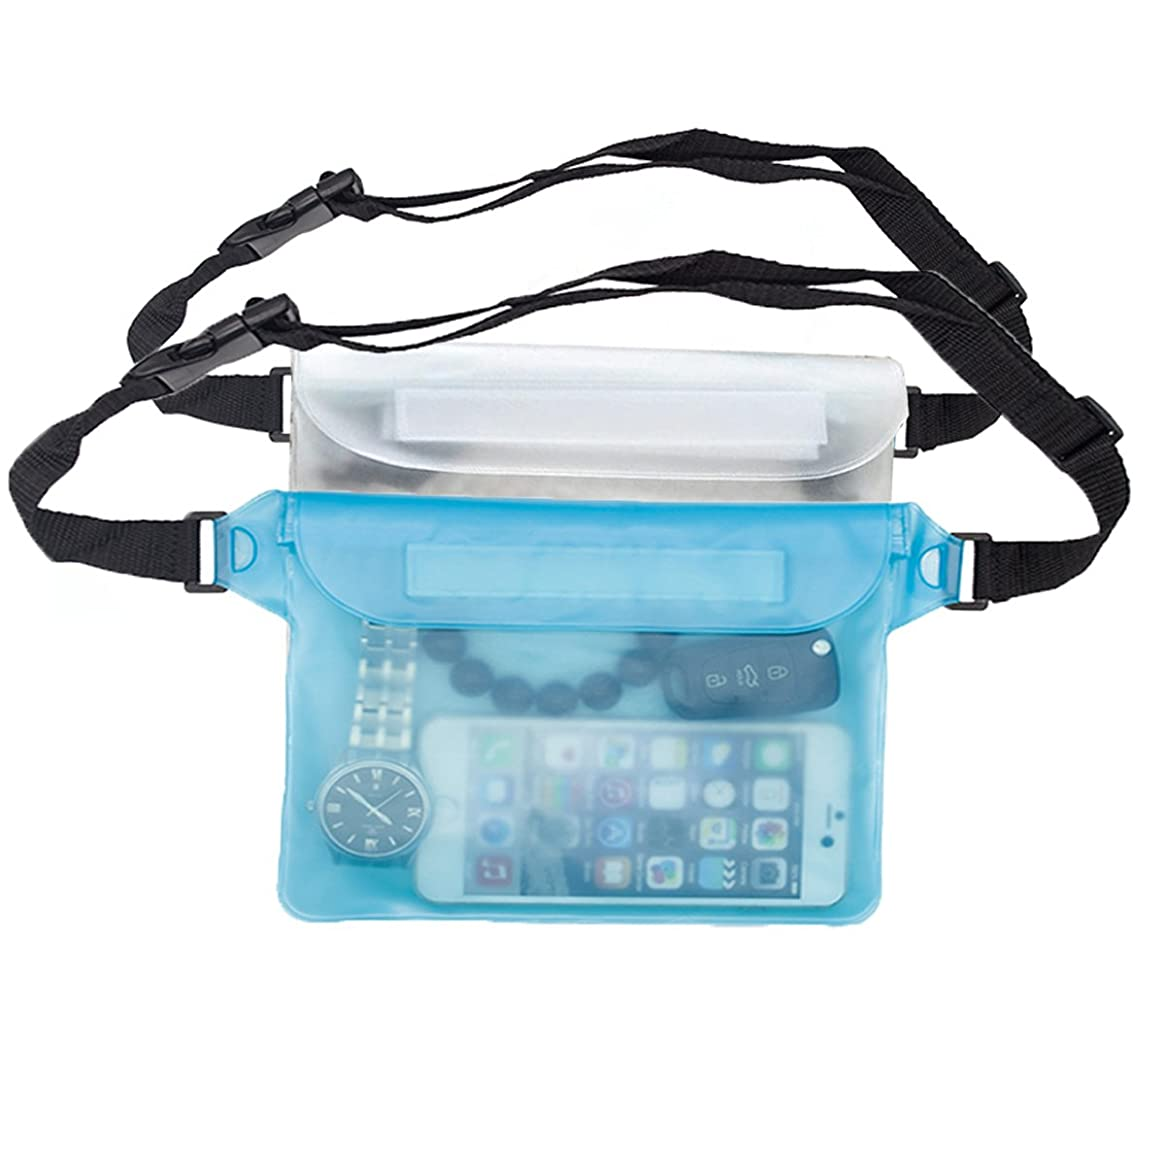 Coideal Waterproof Pouch Dry Bag with Waist/Shoulder Strap Sealing Fanny Pack for Boating,Swimming,Rafting